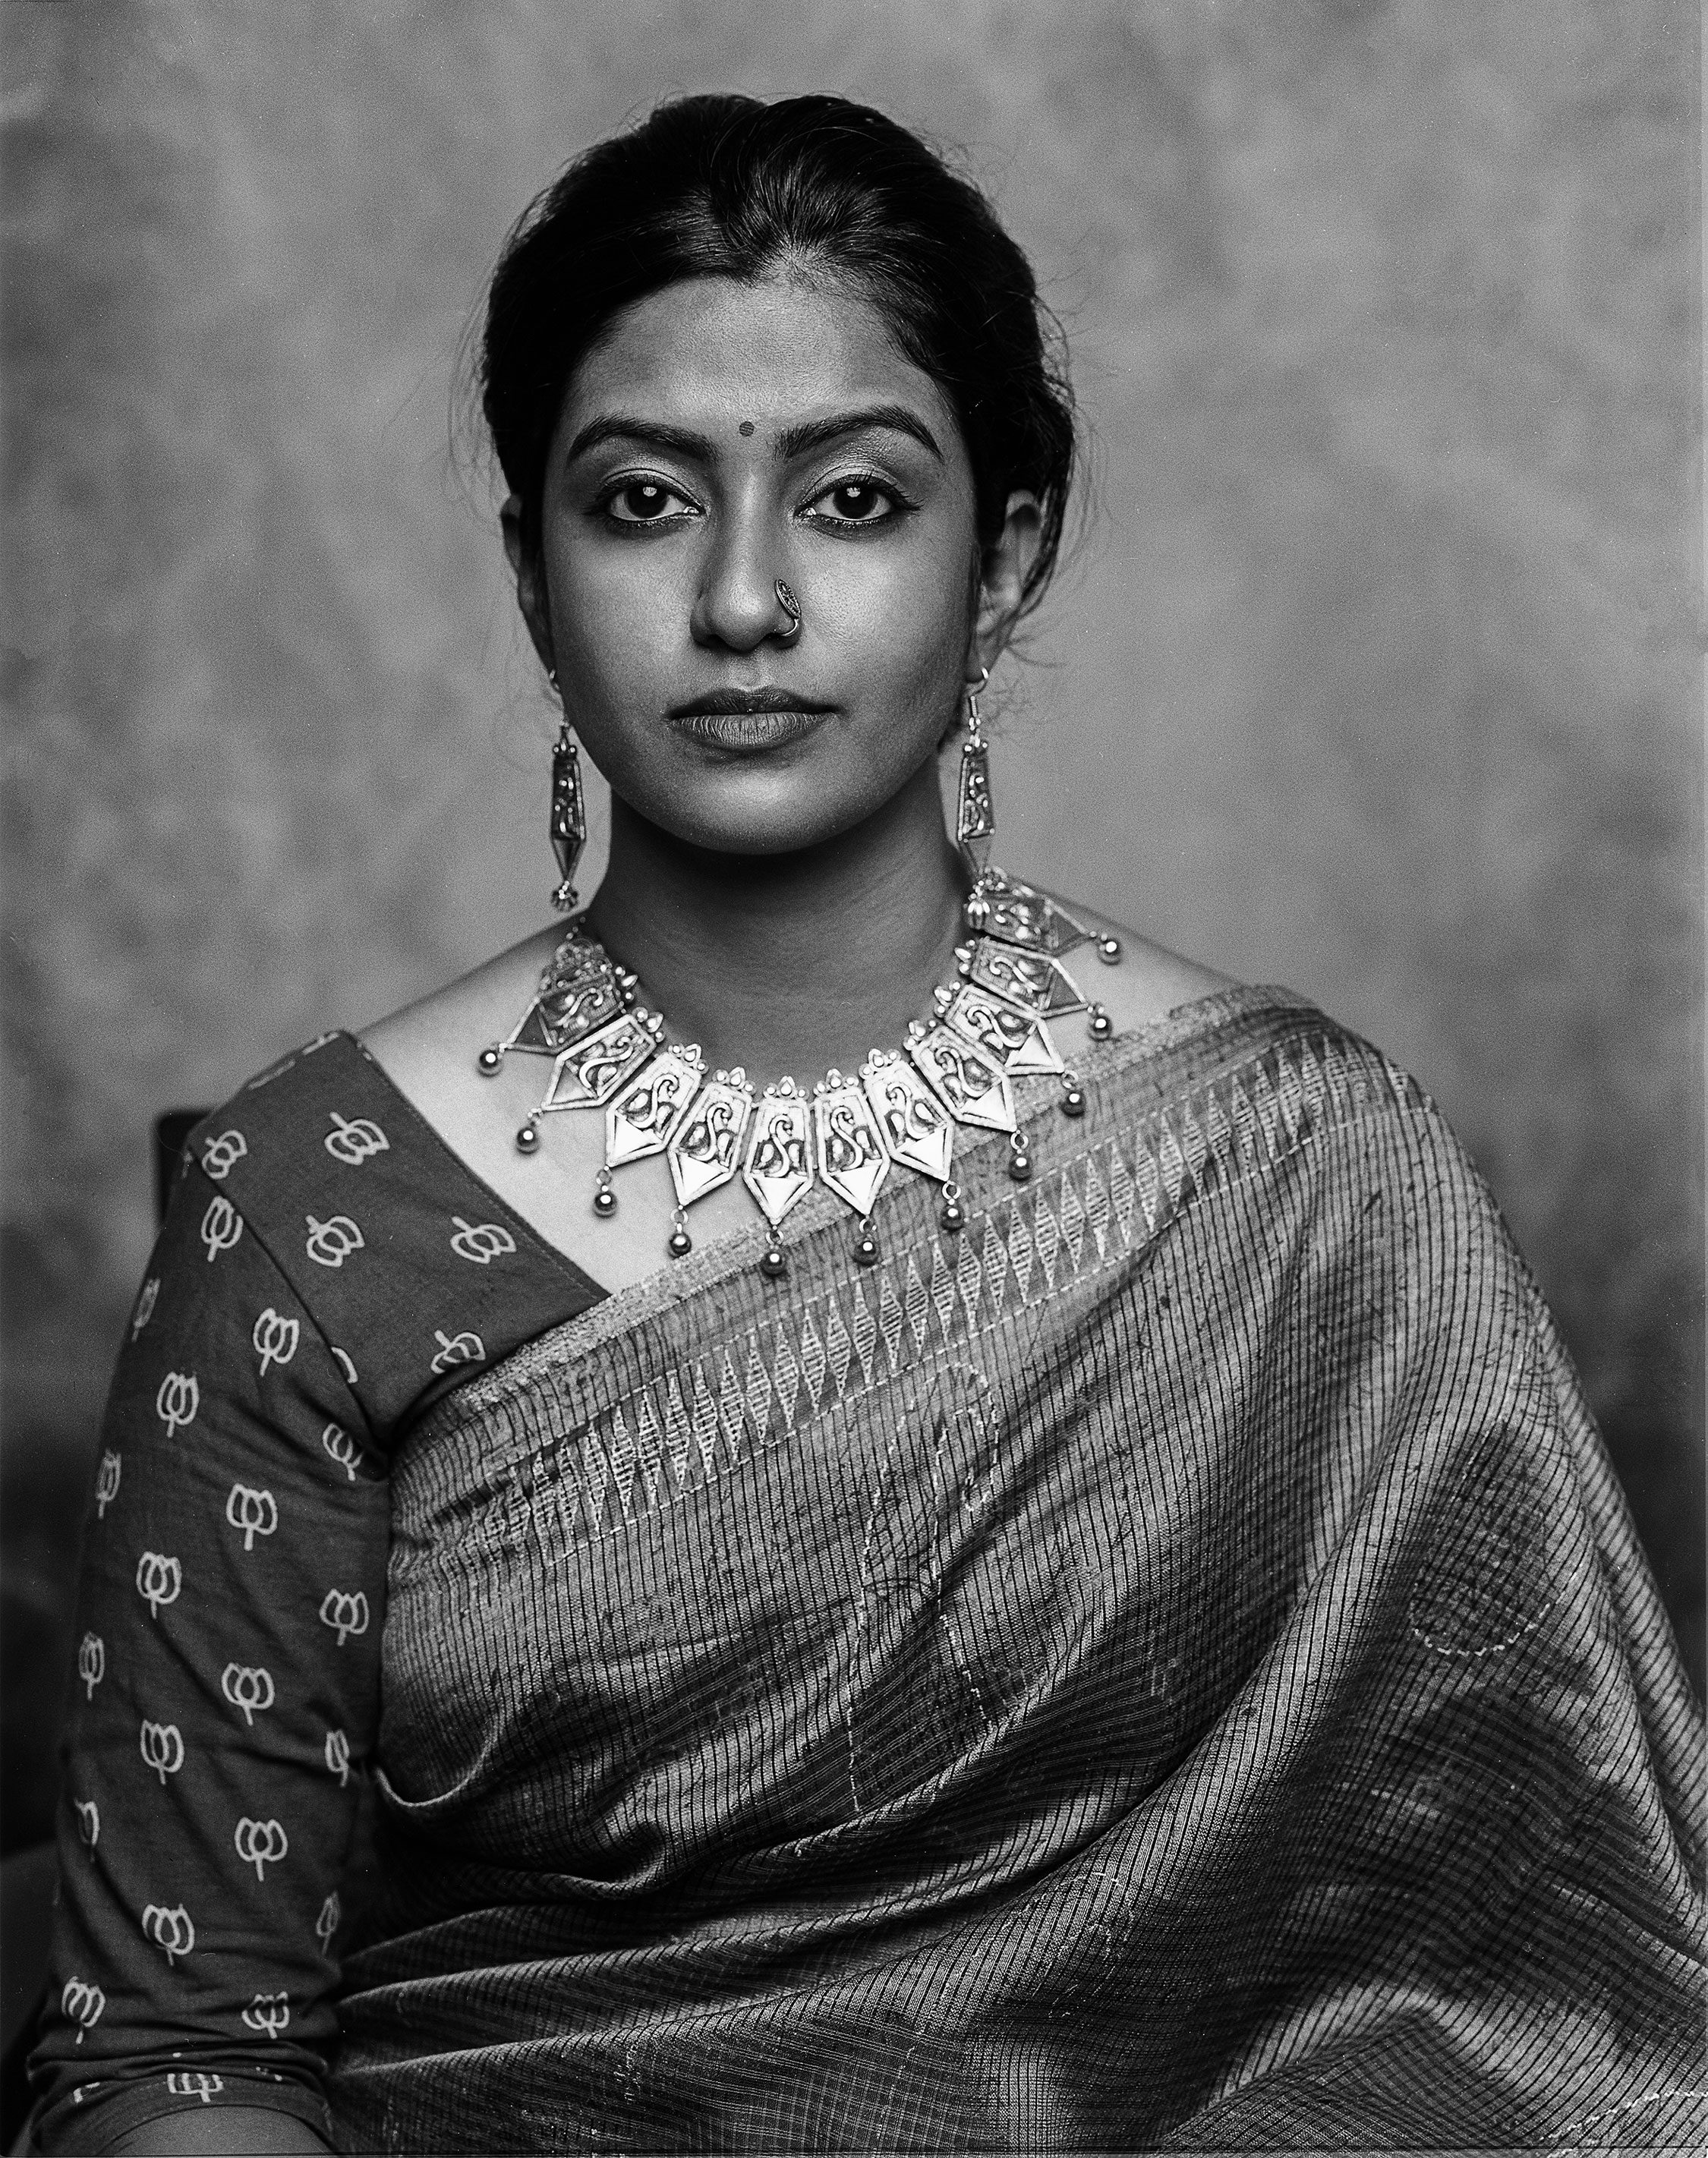 Roshnie shot on black and white ILFORD PHOTO HP5 PLUS film by PV Subramanian